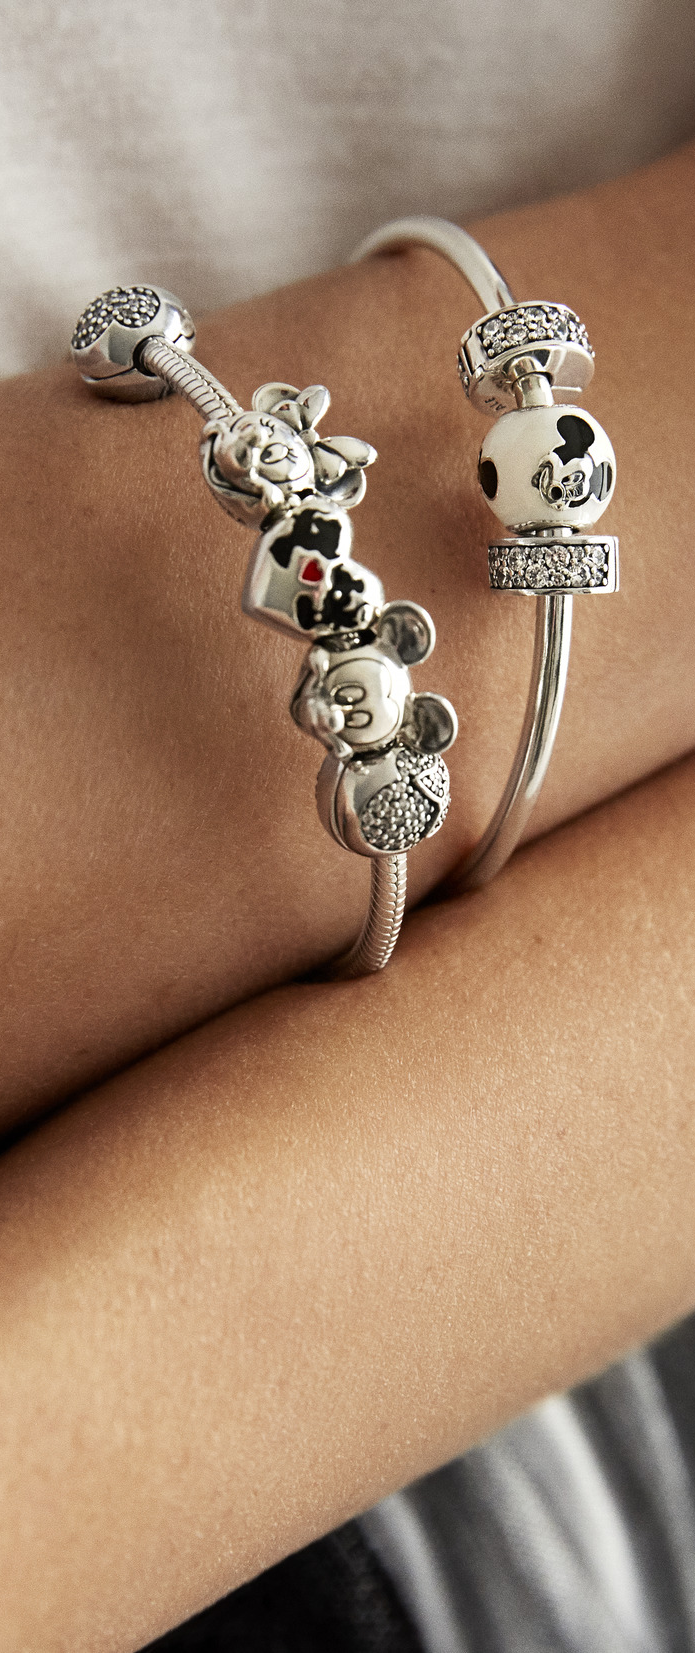 Hereus to the longawaited premiere of the pandora disney collection